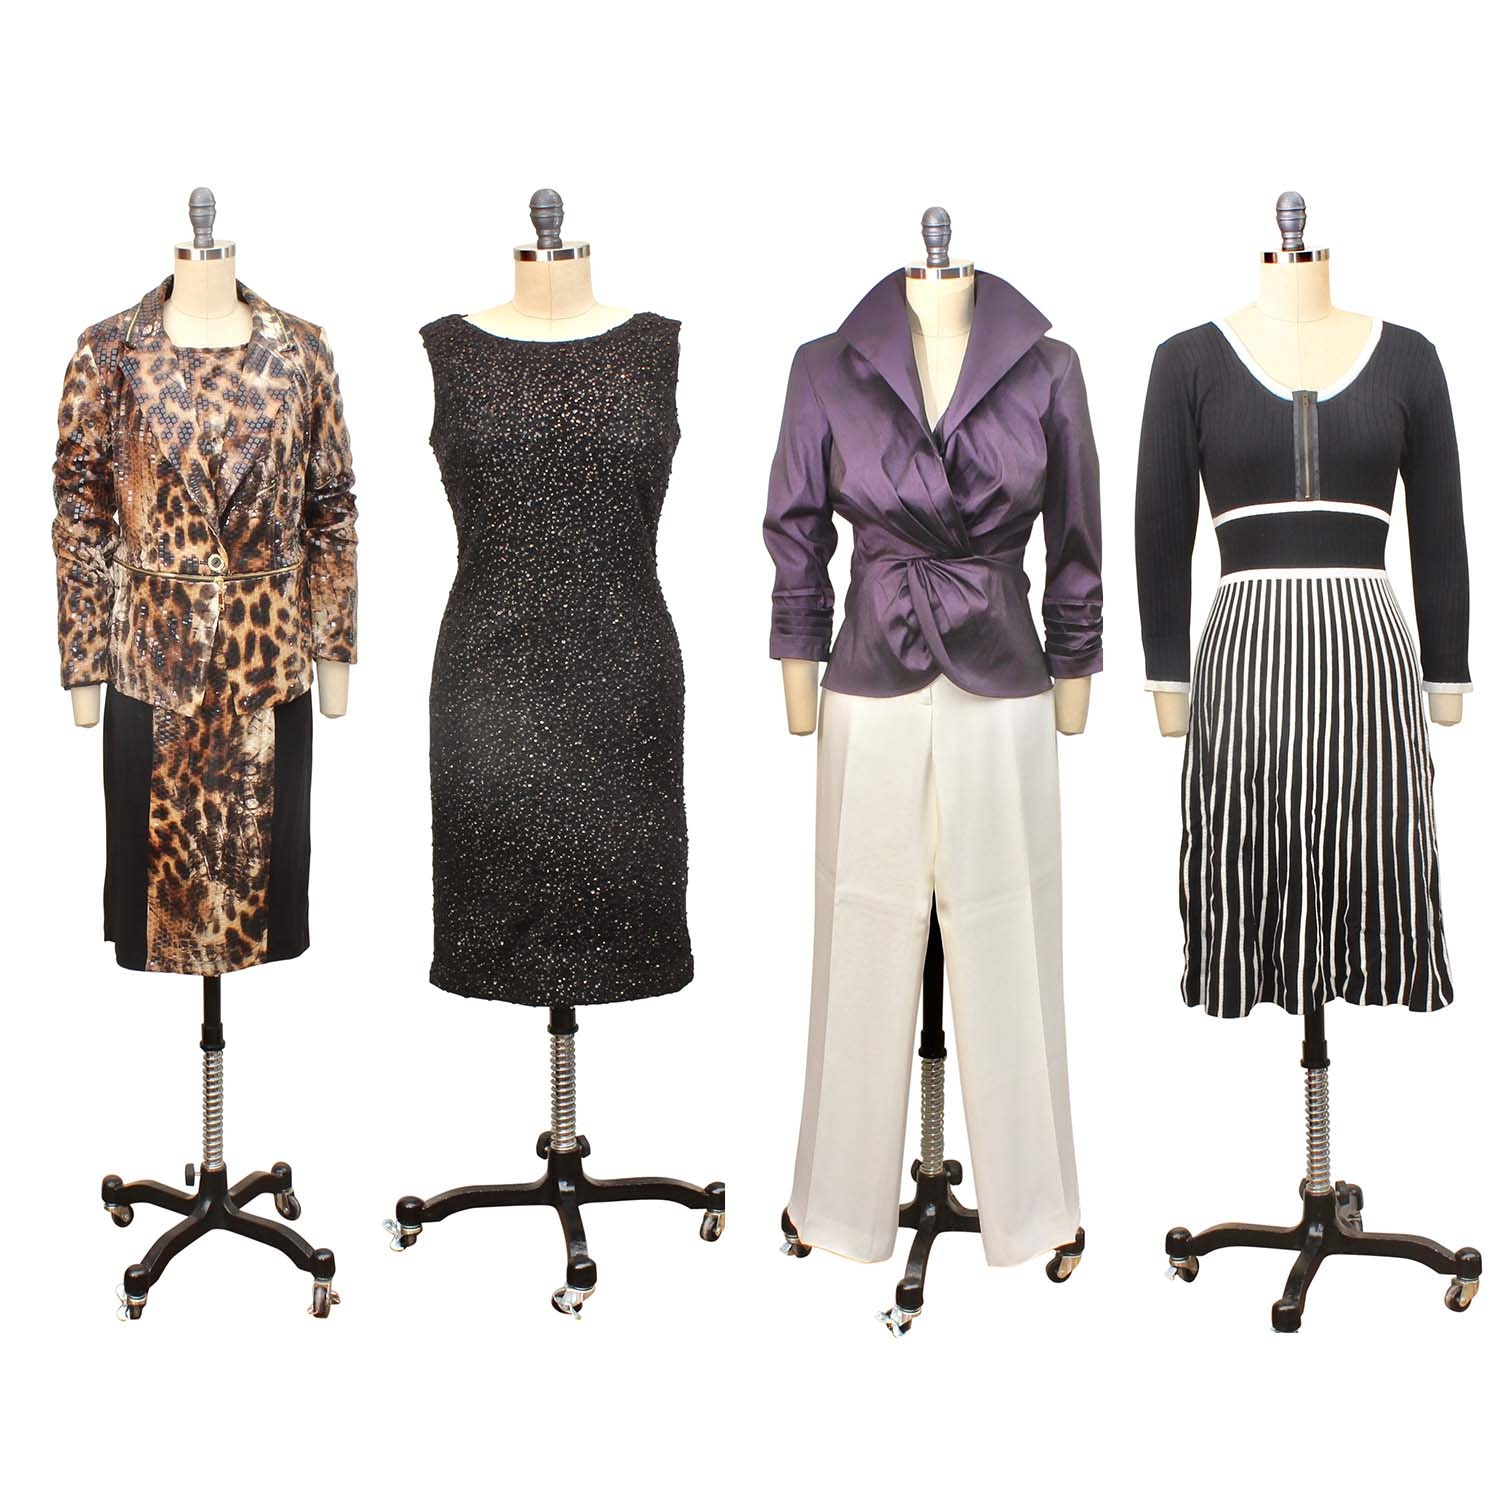 Women's Clothing Including Frank Lyman Design, Tadashi Shoji and Lafayette 148